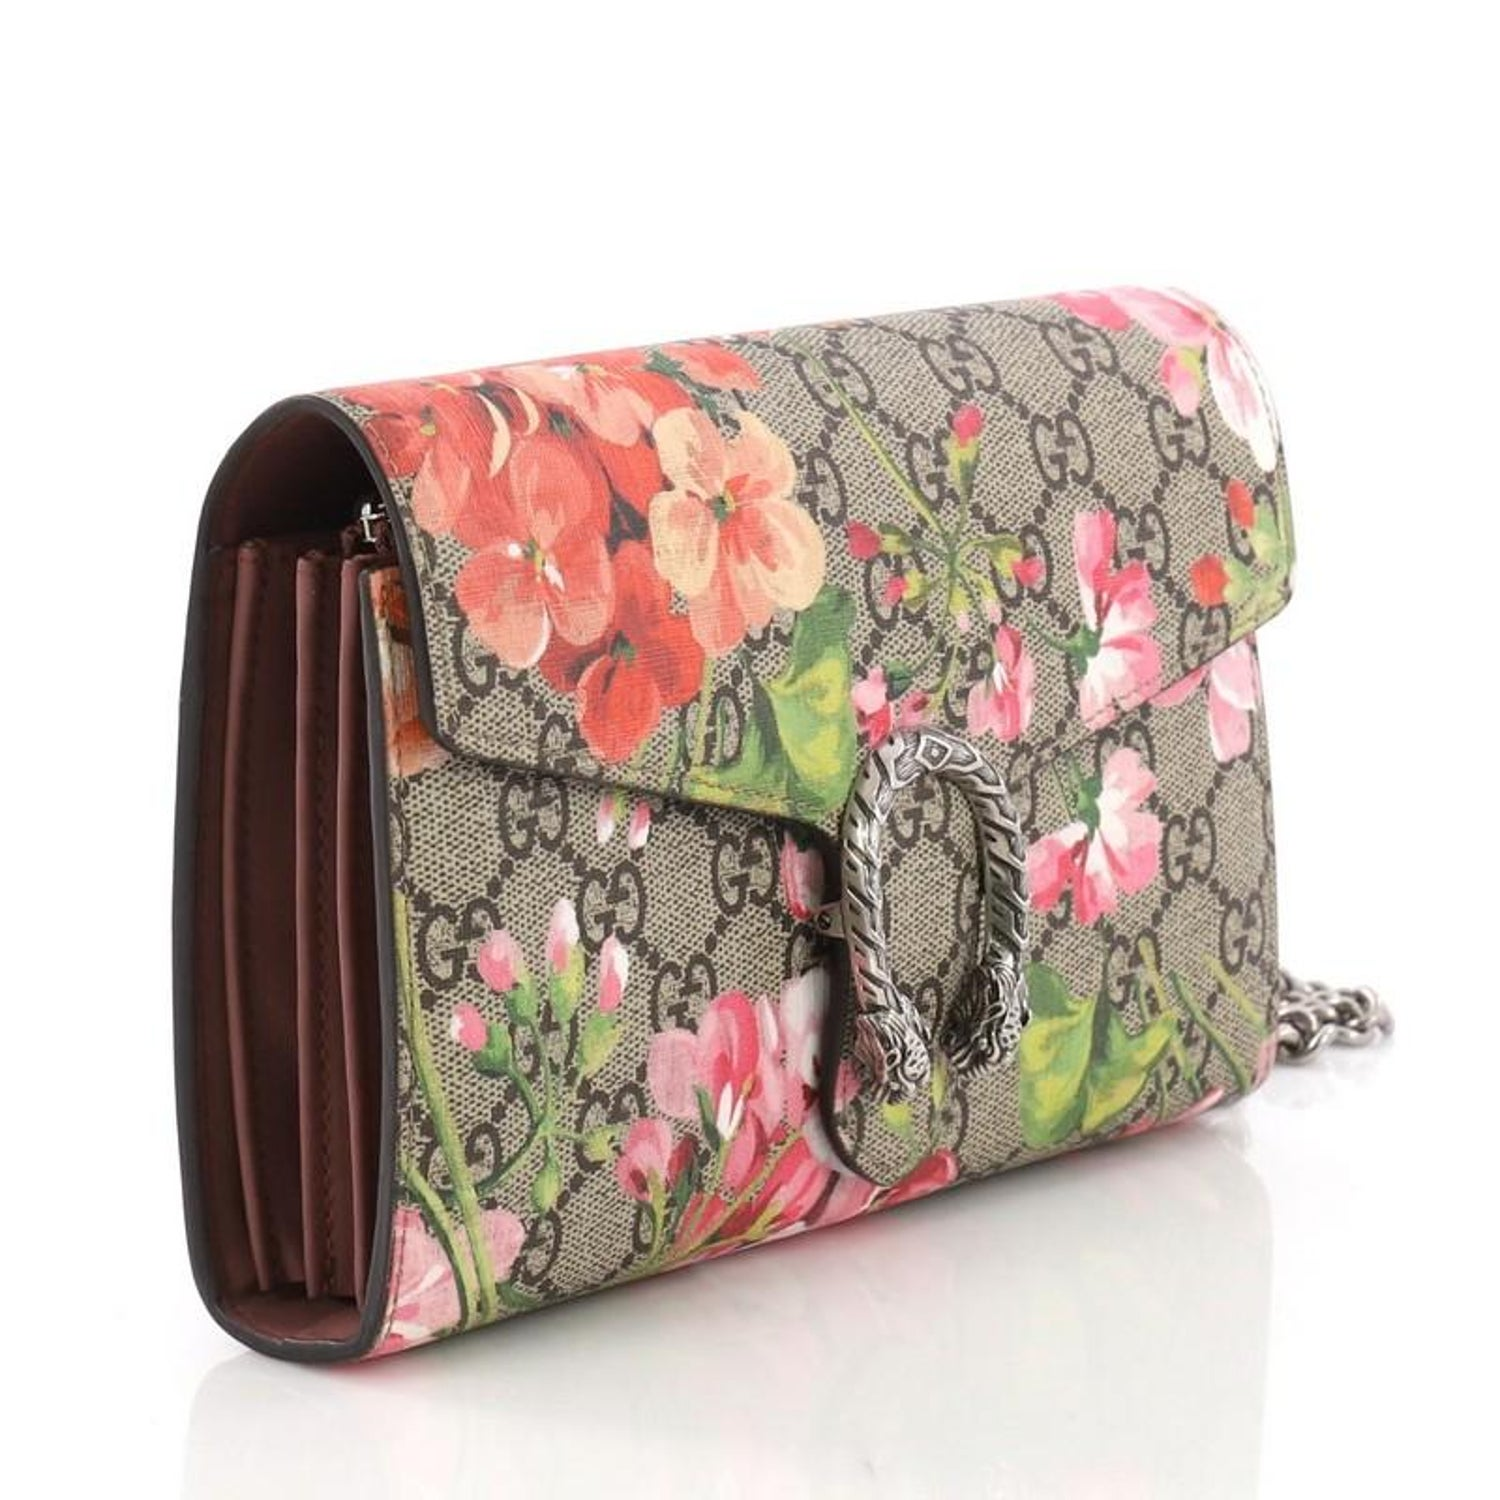 f5368f0e2da Gucci Dionysus Chain Wallet Blooms Print GG Coated Canvas Small at 1stdibs